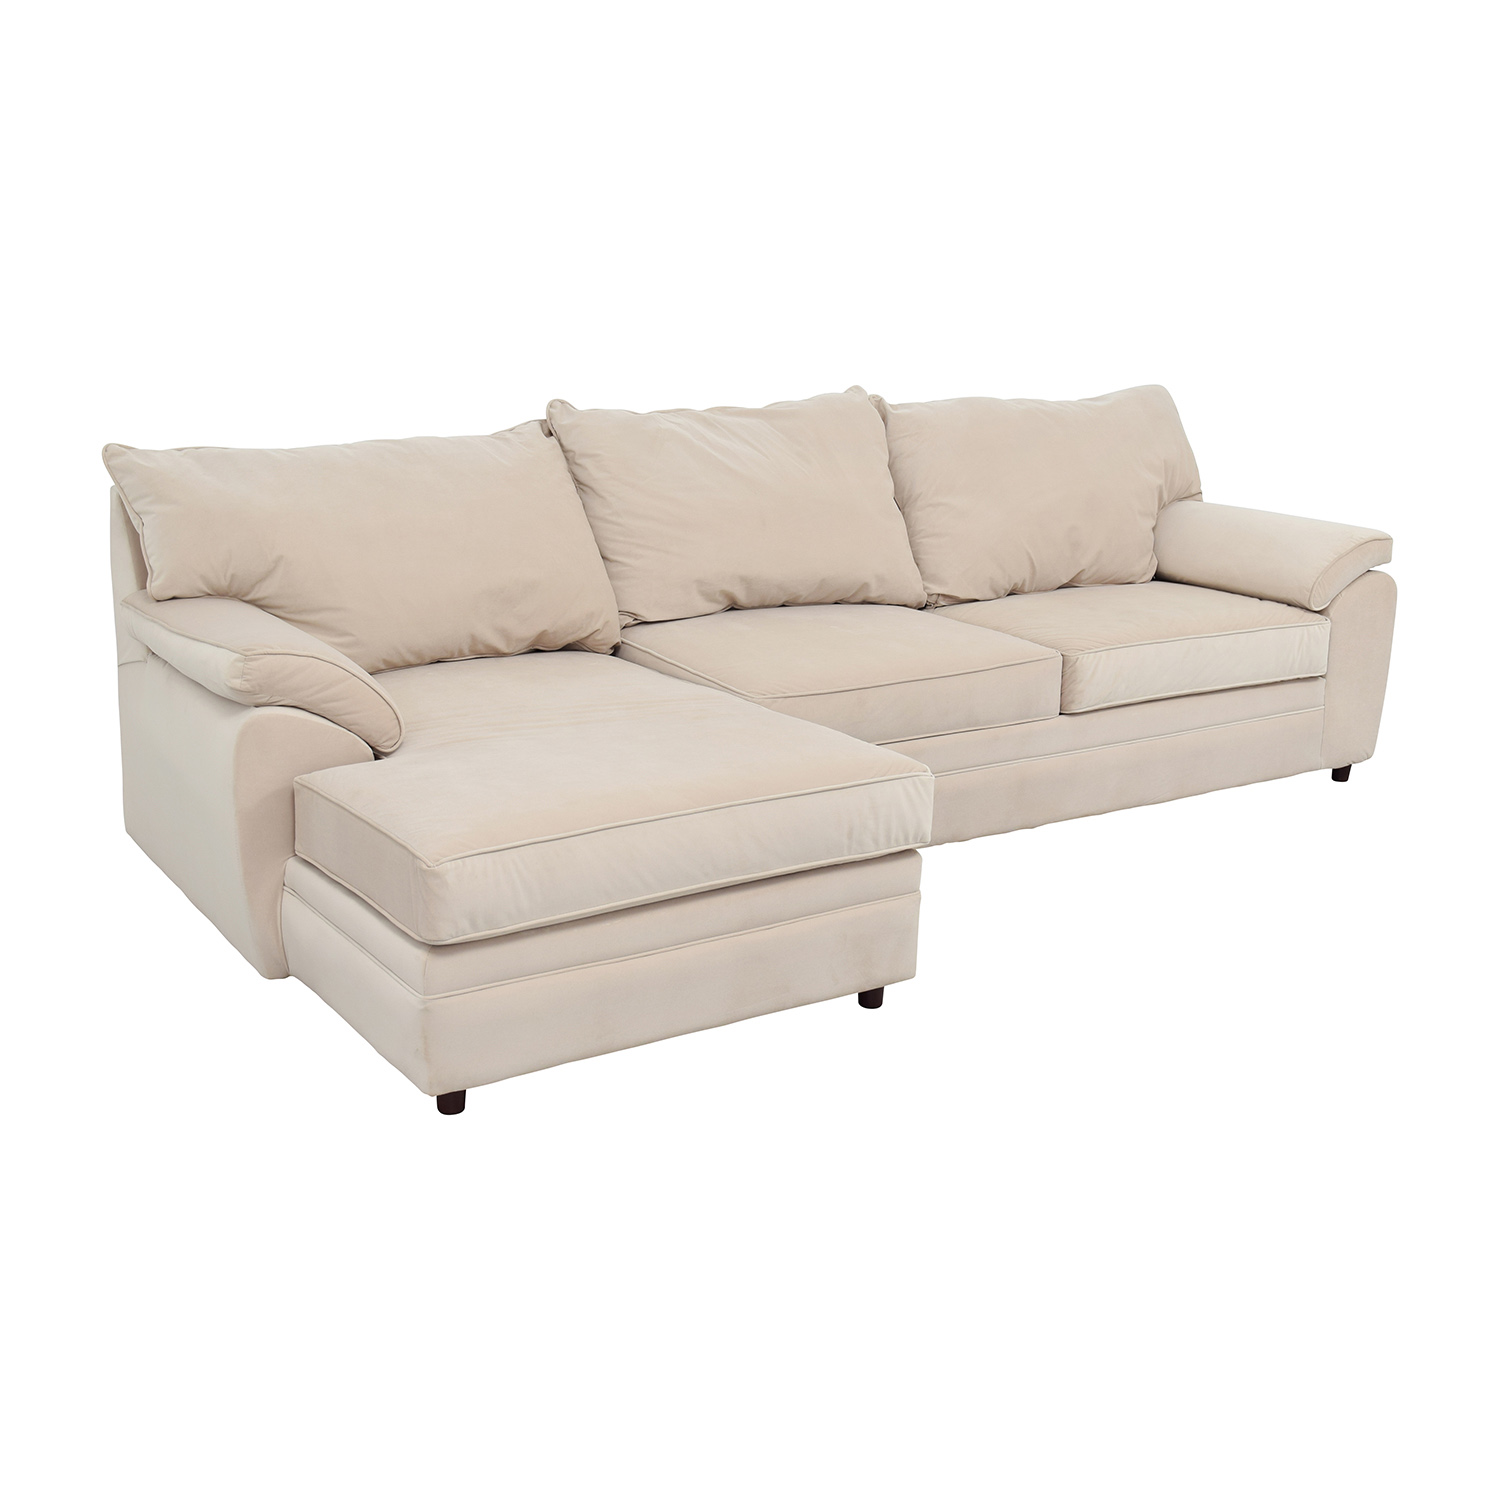 buy Bob Furniture Off-White Right Chaise Sectional Bobs Furniture Sectionals